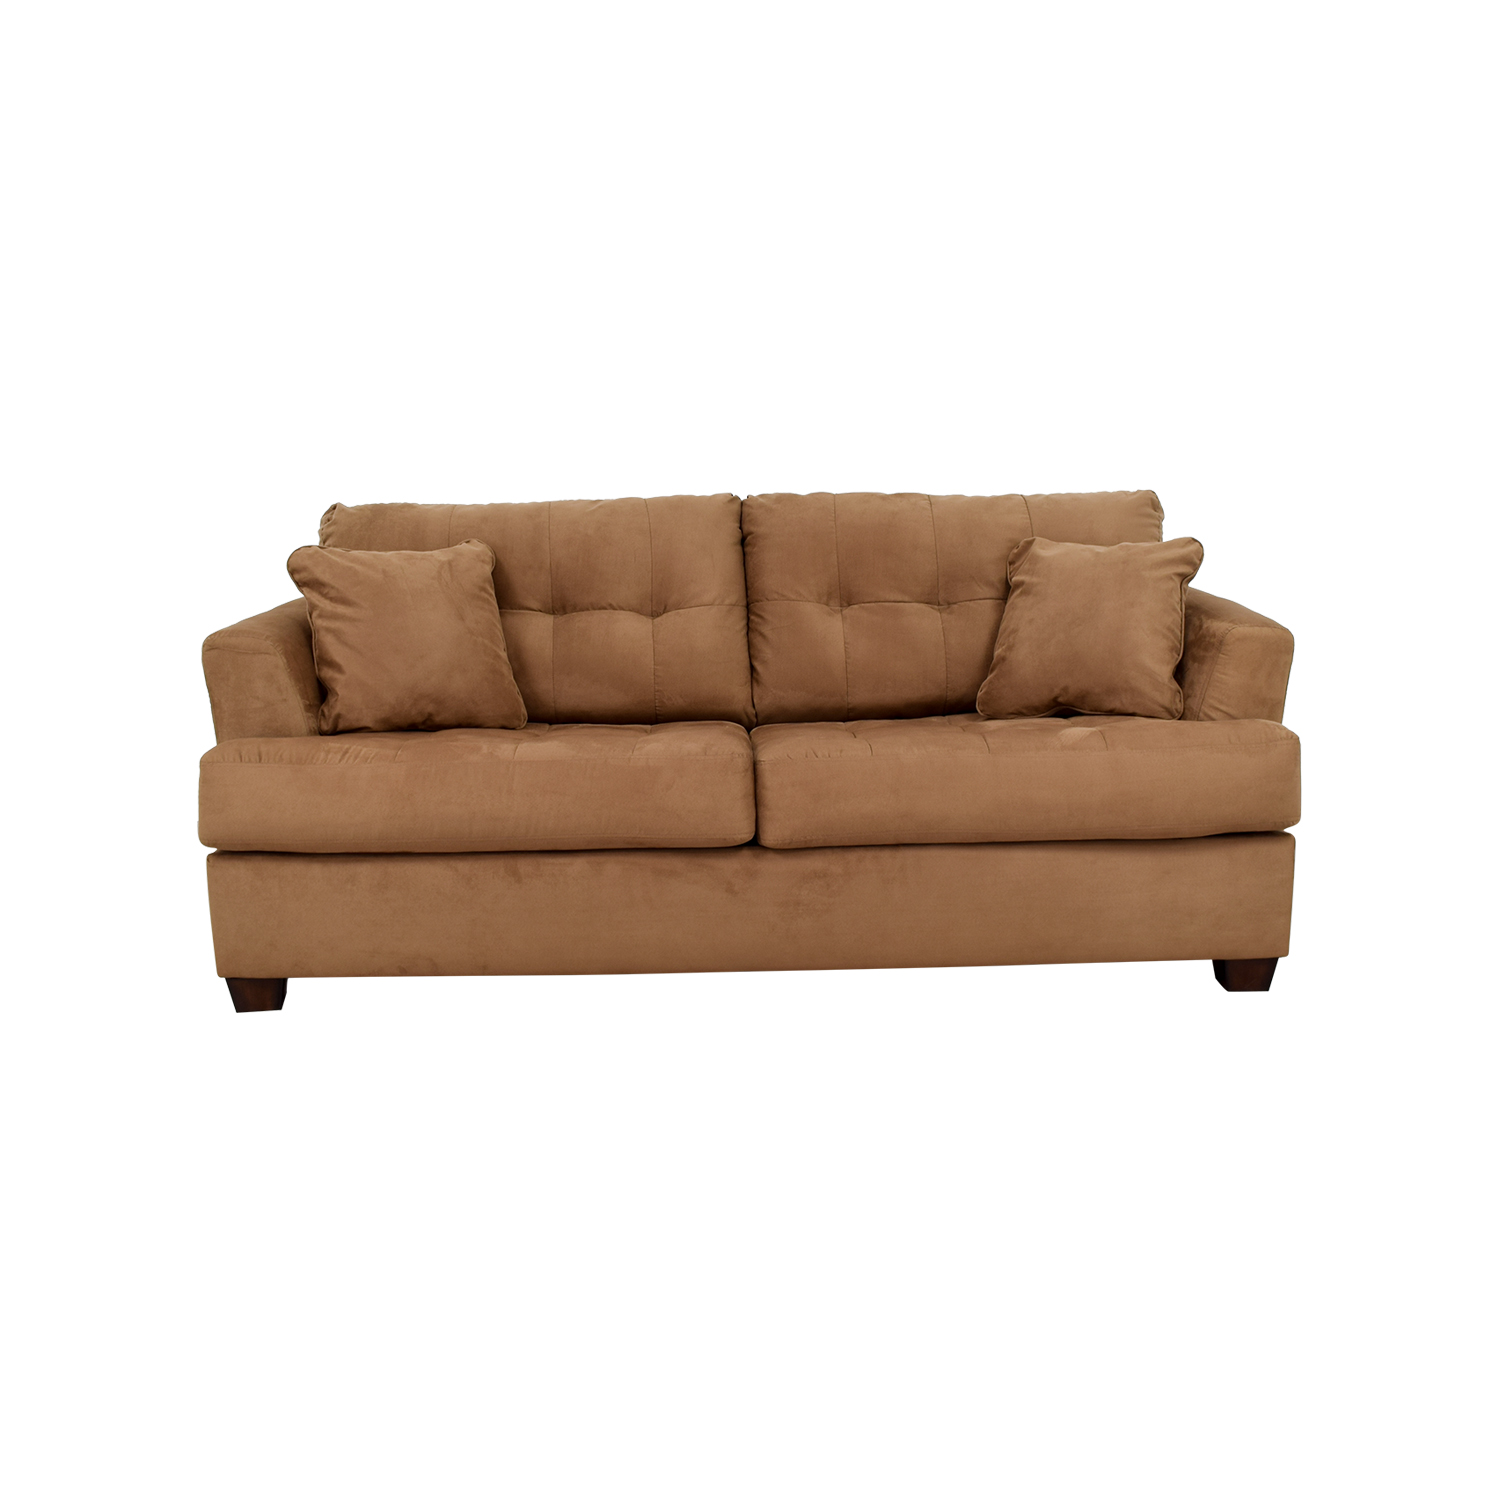 Ashley Furniture Tan Microfiber Convertible Couch Online